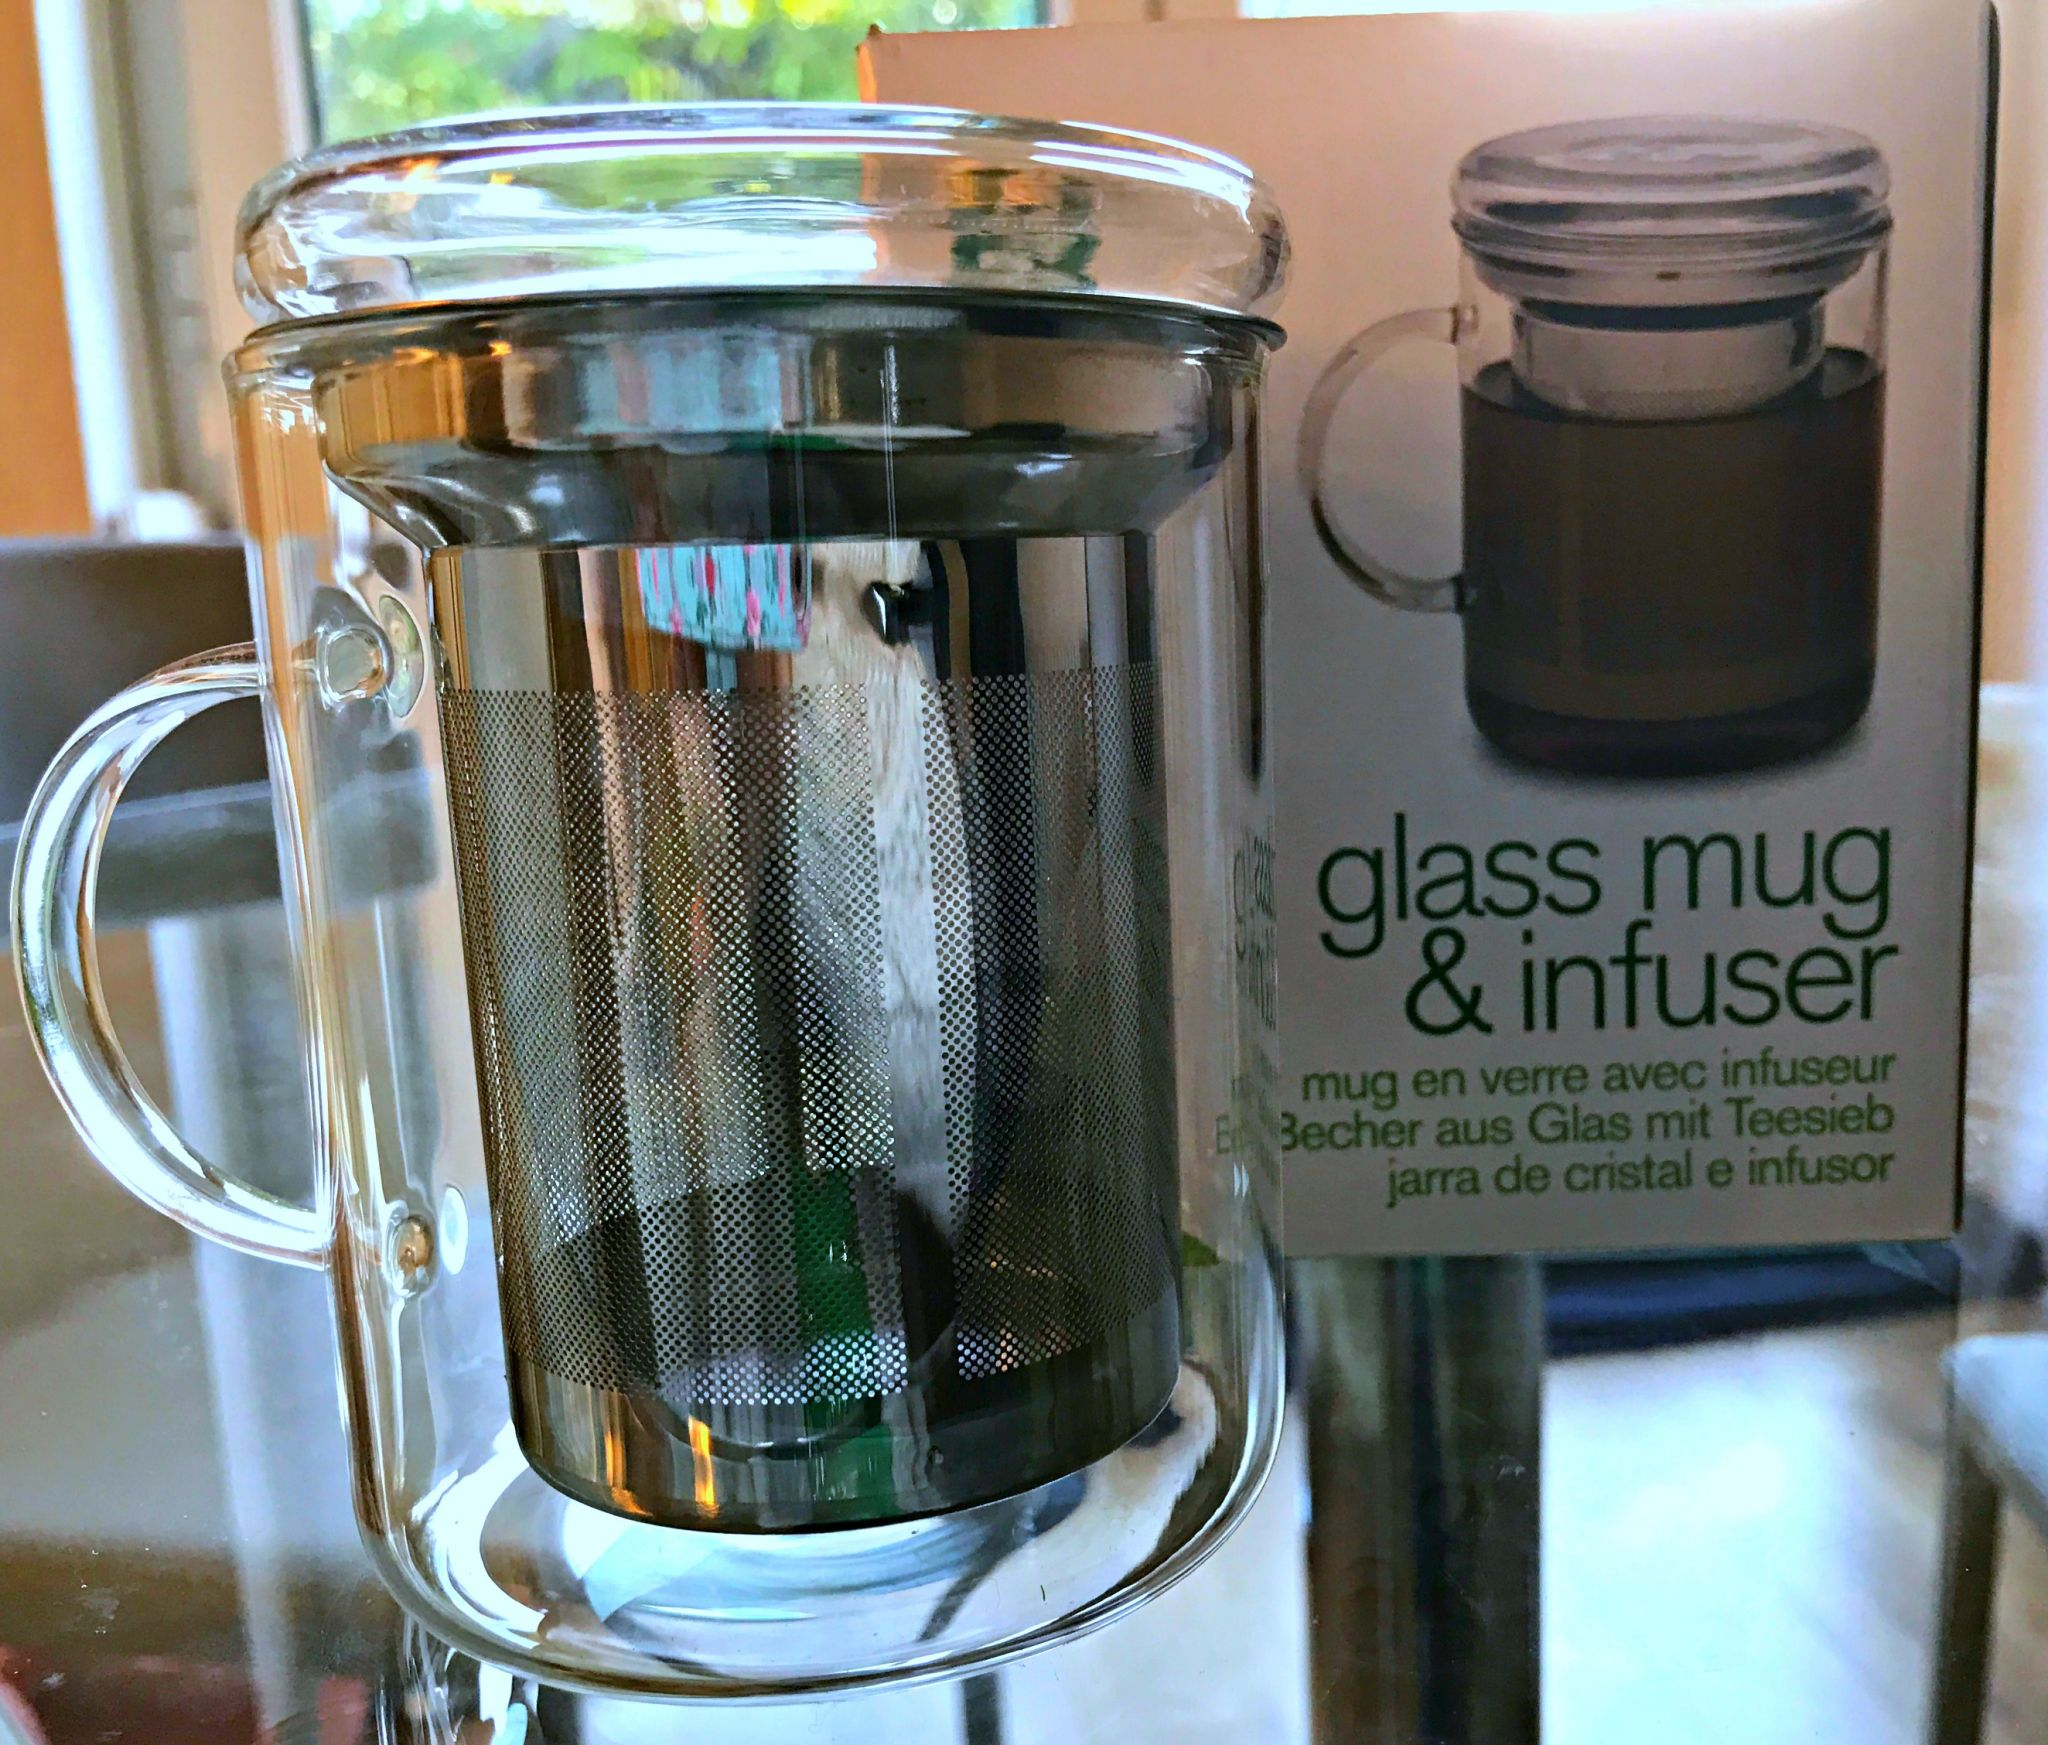 Adagio gourmet tea: glass mug and infuser